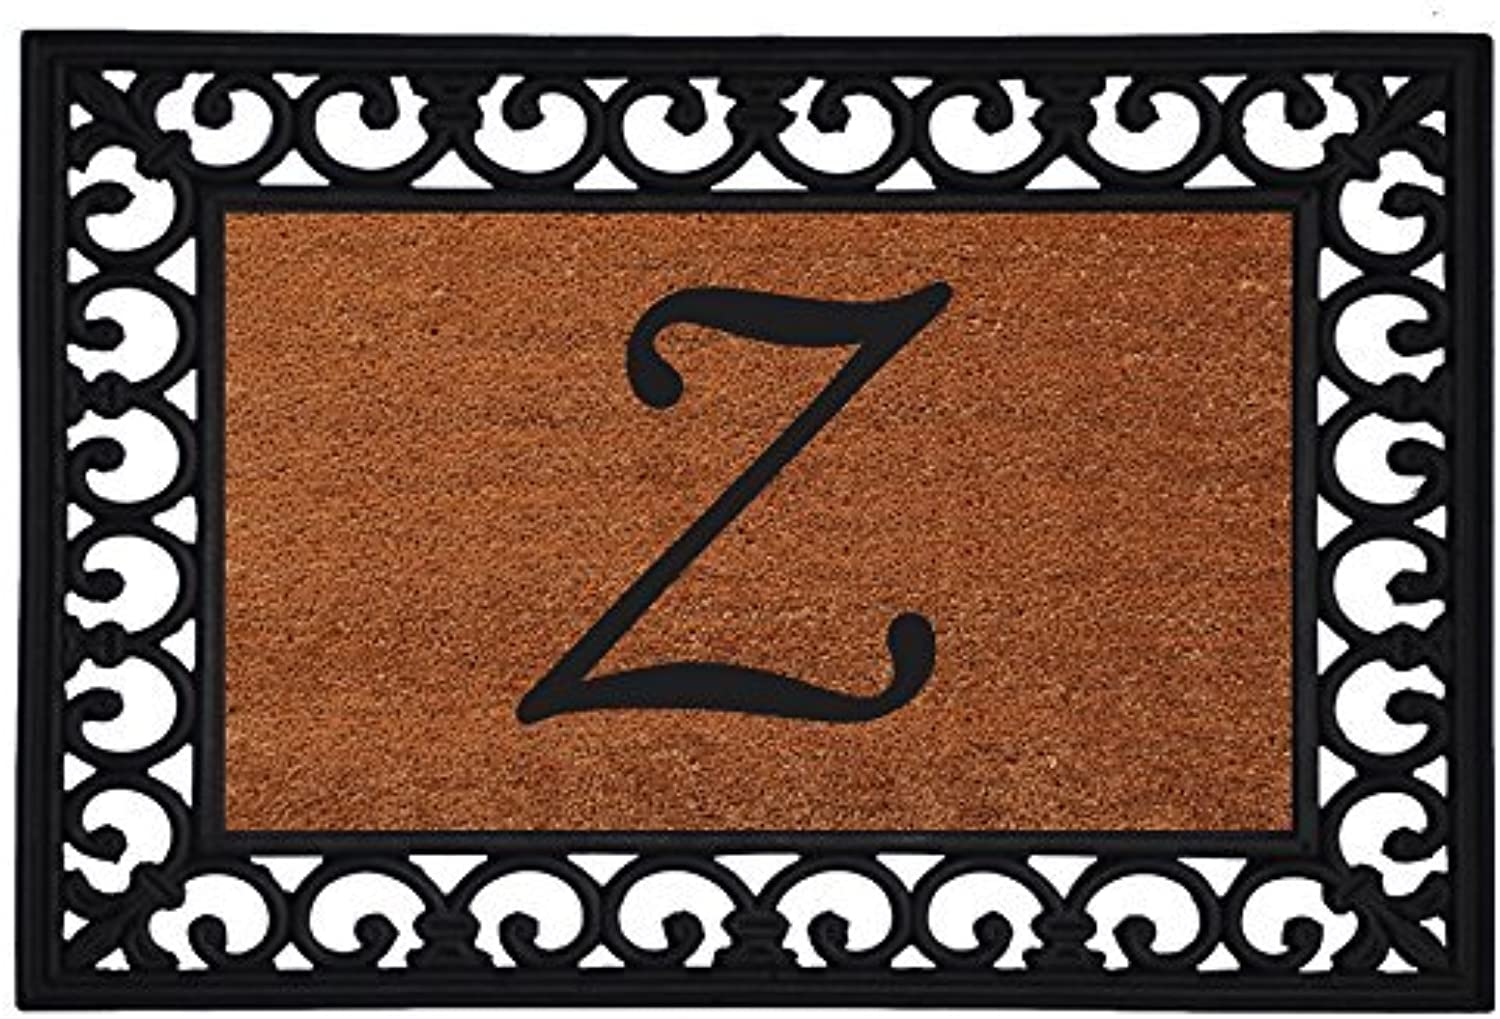 Home & More 180041925Z Inserted Doormat, 19  X 25  x 0.60 , Monogrammed Letter Z, Natural Black